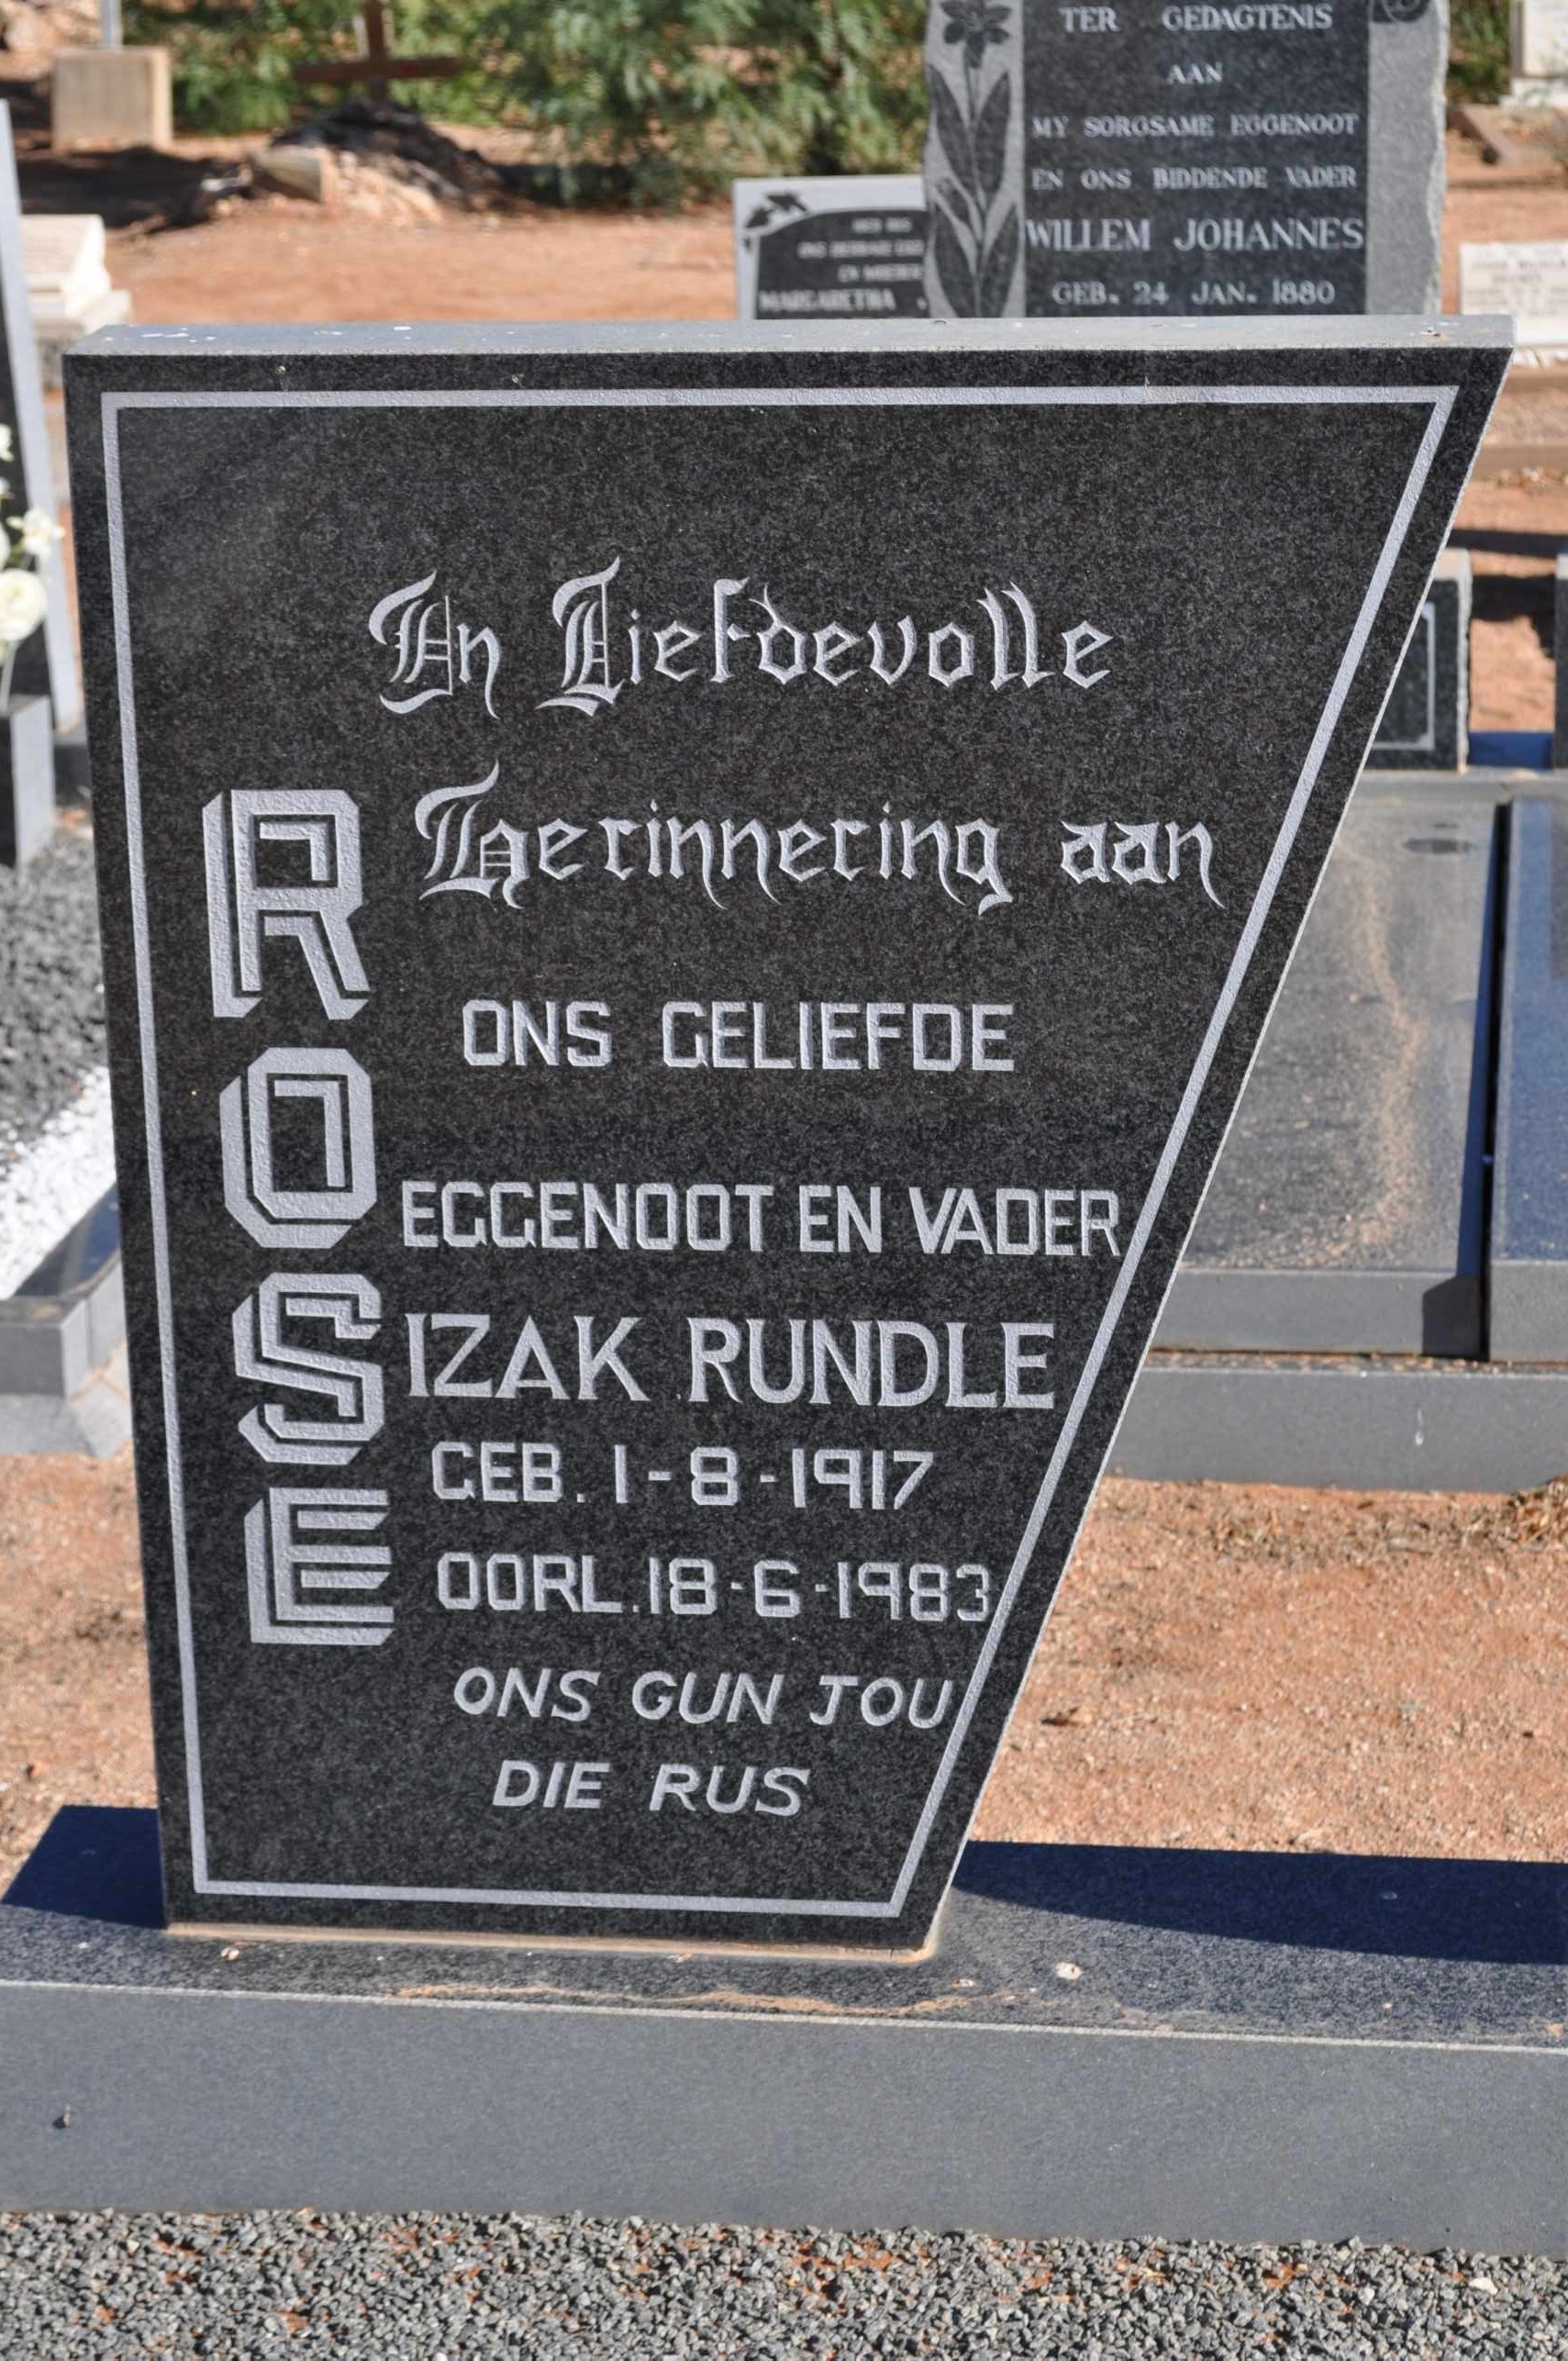 Rose, Izak Rundle